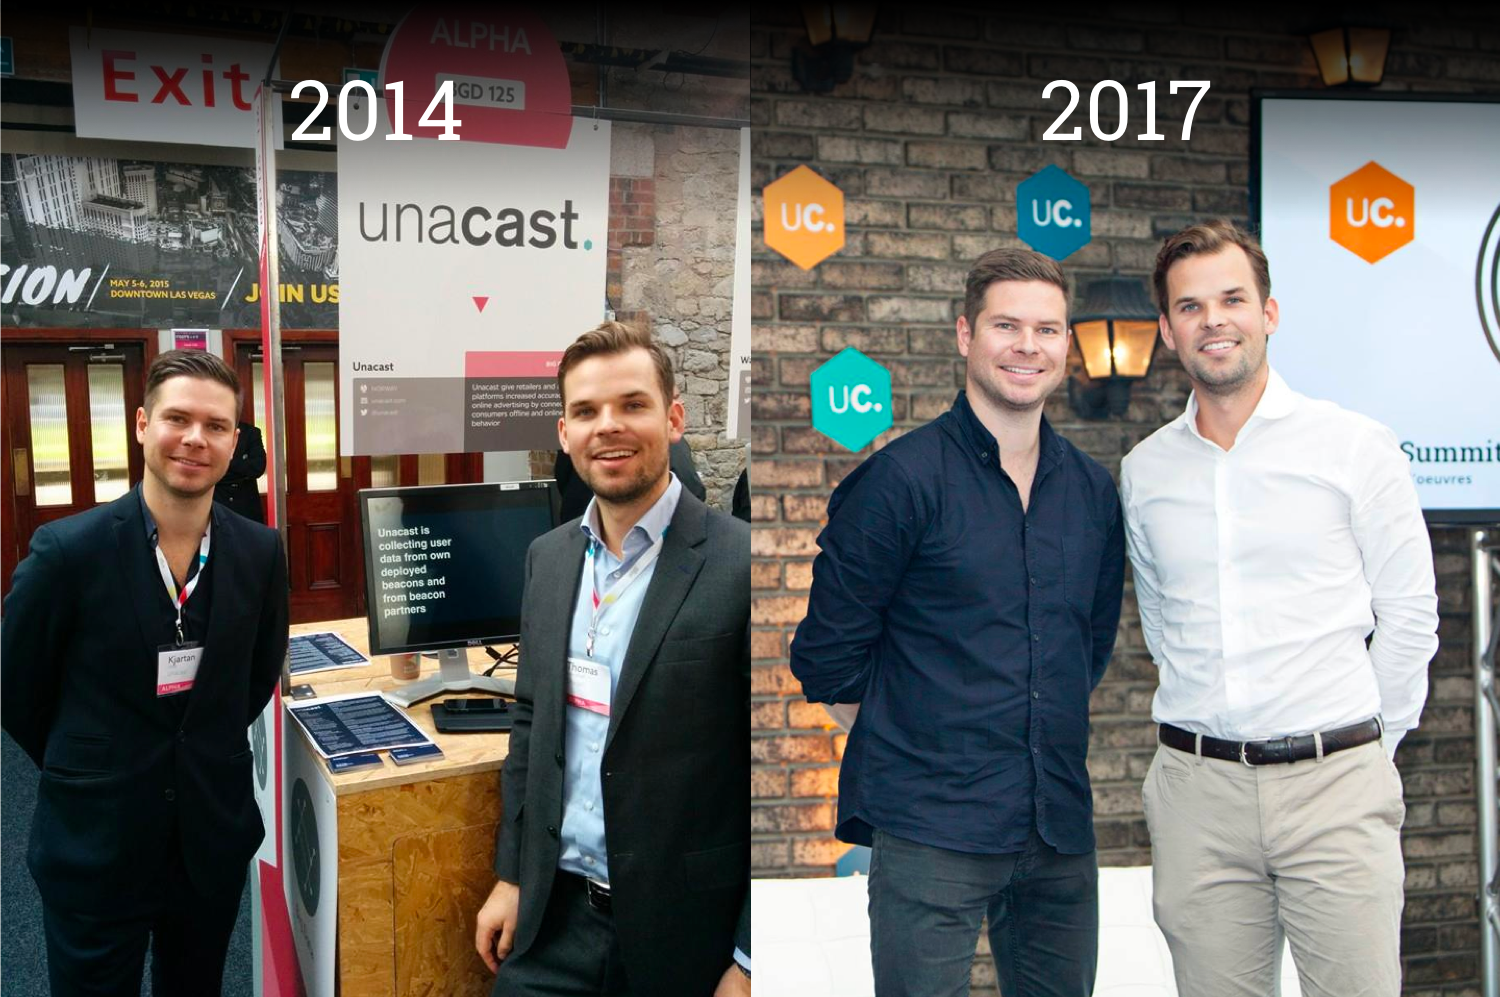 Unacast Co-Founders Kjartan (KJ) Slette and Thomas Walle throughout the years